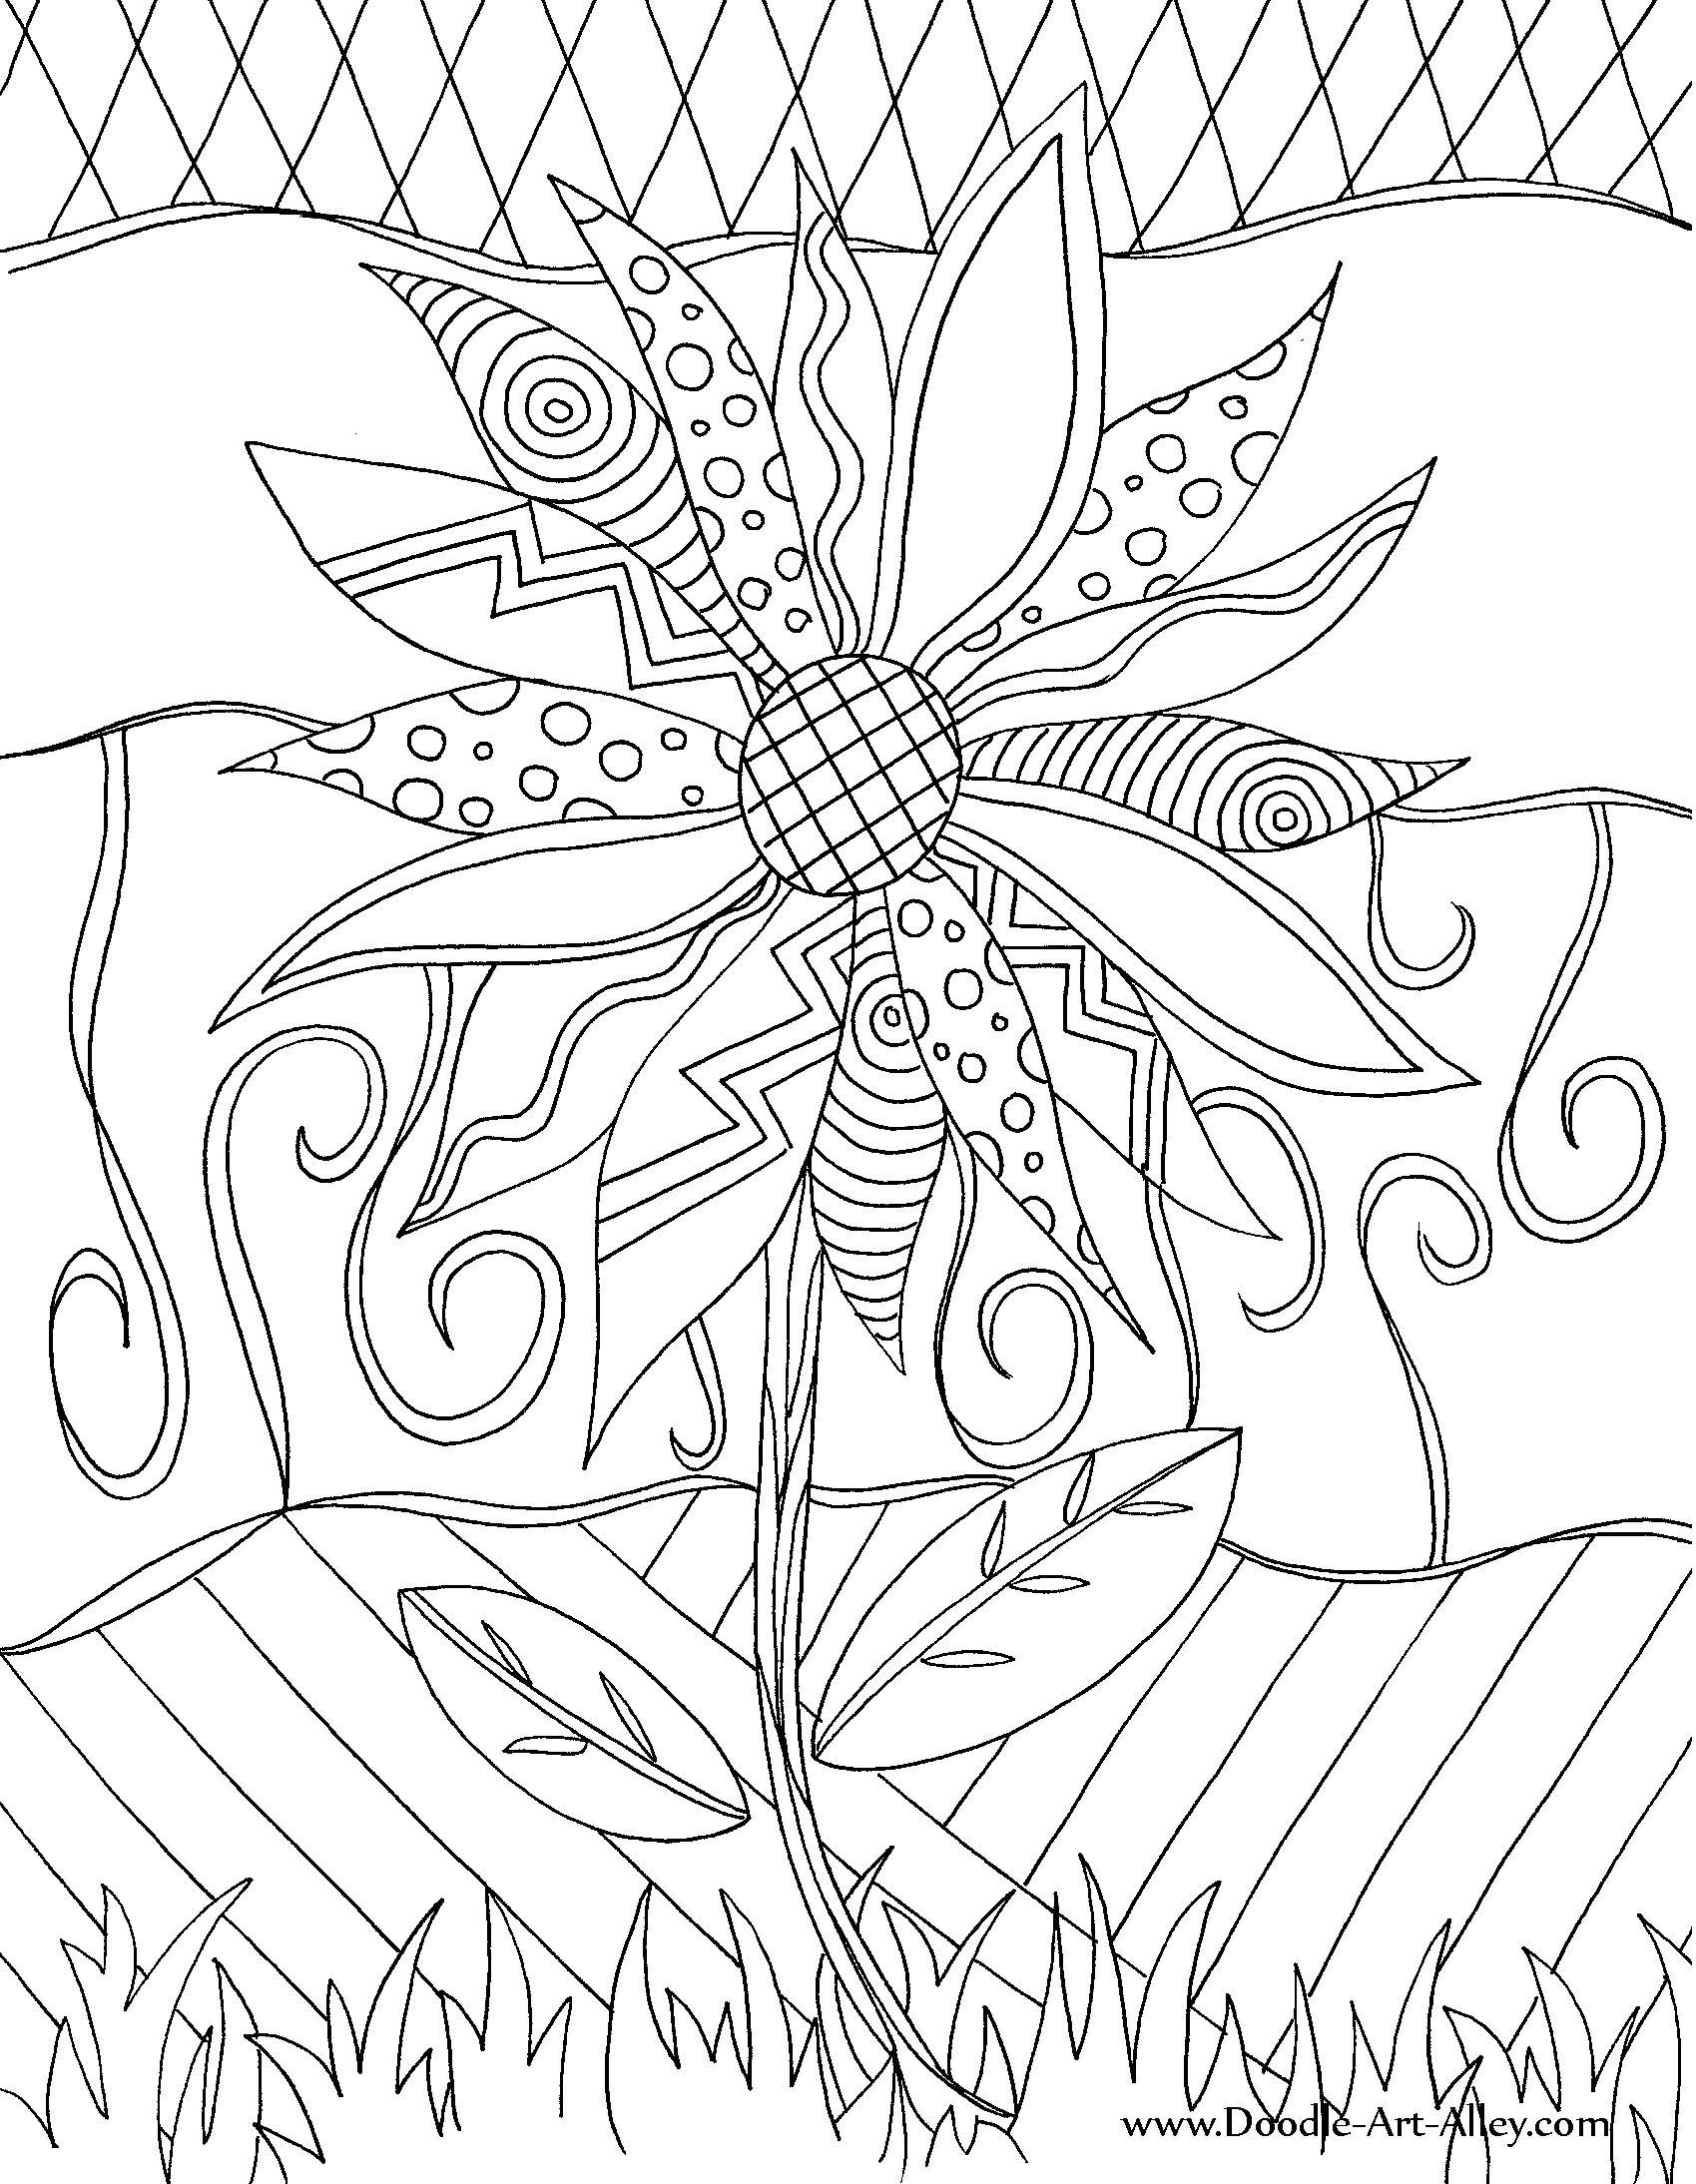 Doodle Art Coloring Pages  22 Collections of Free Doodle Coloring Pages Gianfreda